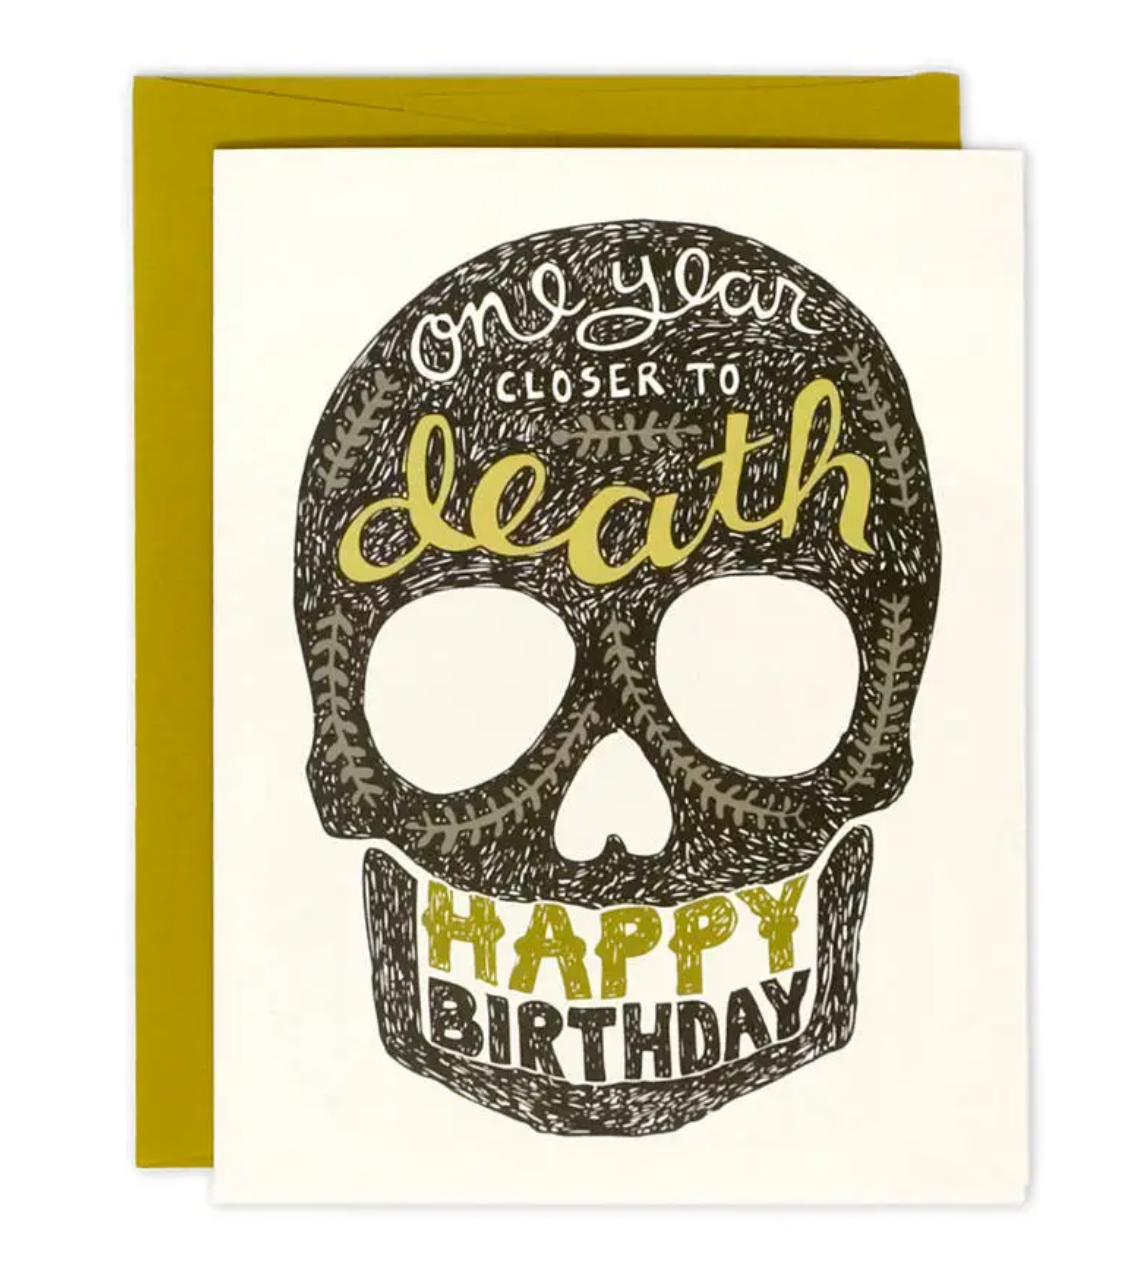 Wit & Whistle Closer to Death Birthday